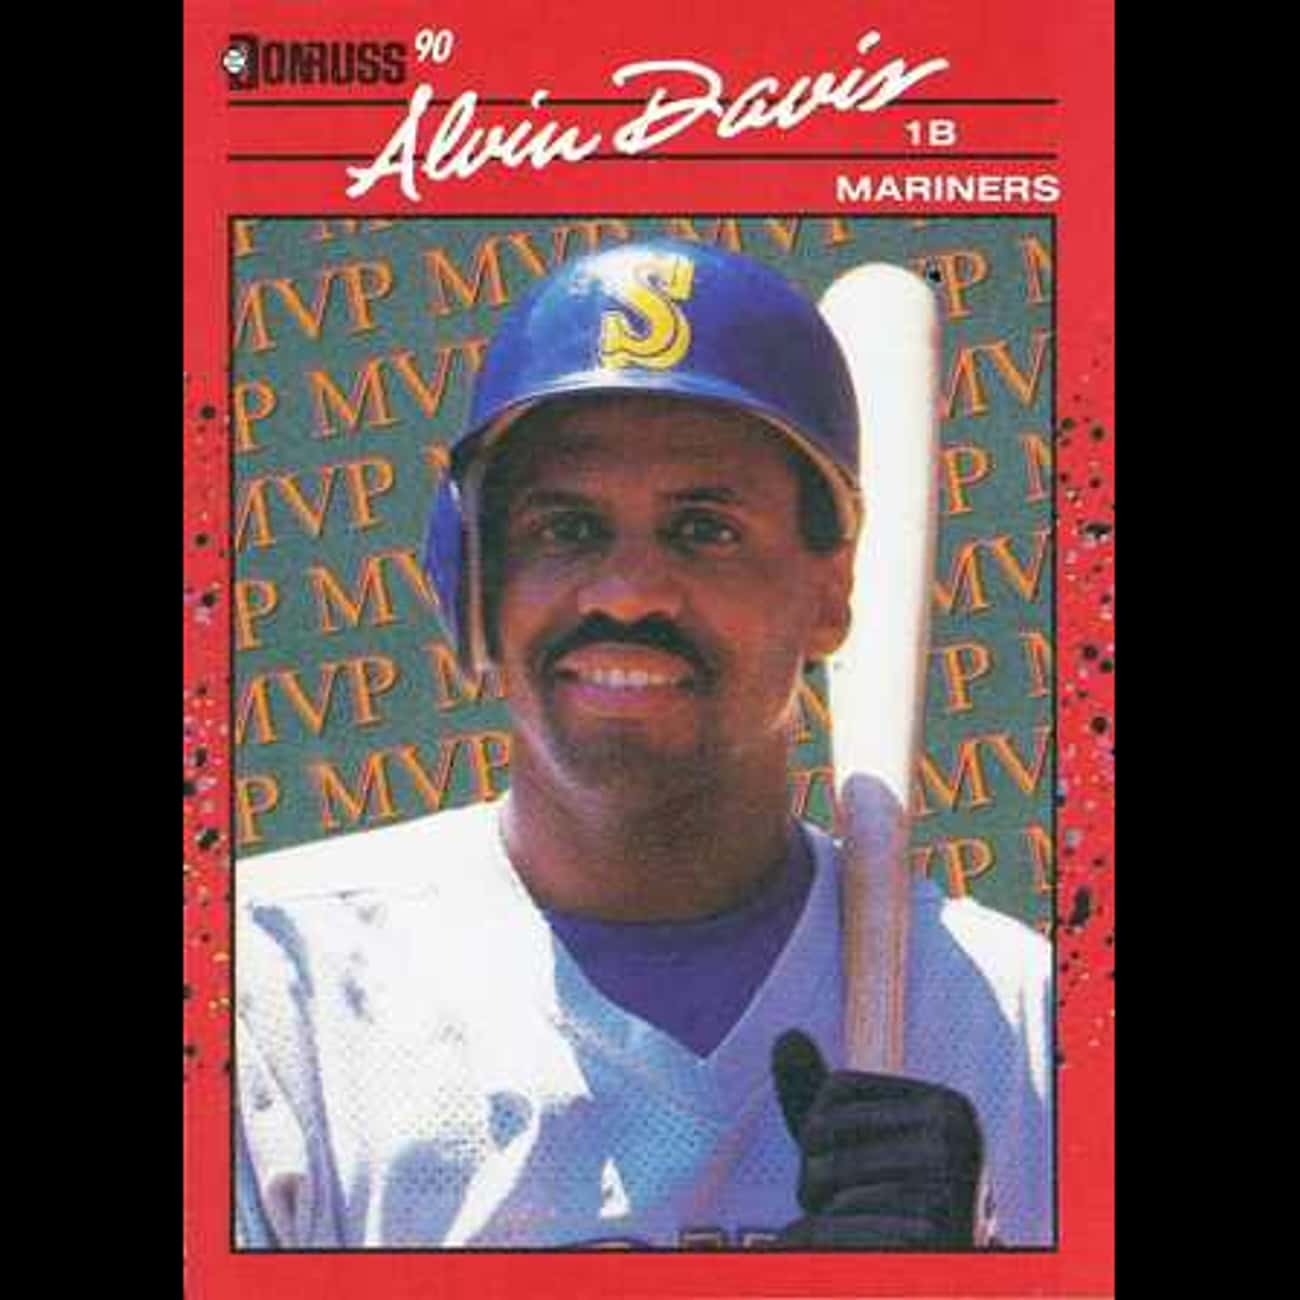 Baseball Cards is listed (or ranked) 2 on the list The Most Worthless '90s Collectibles You Spent Money On